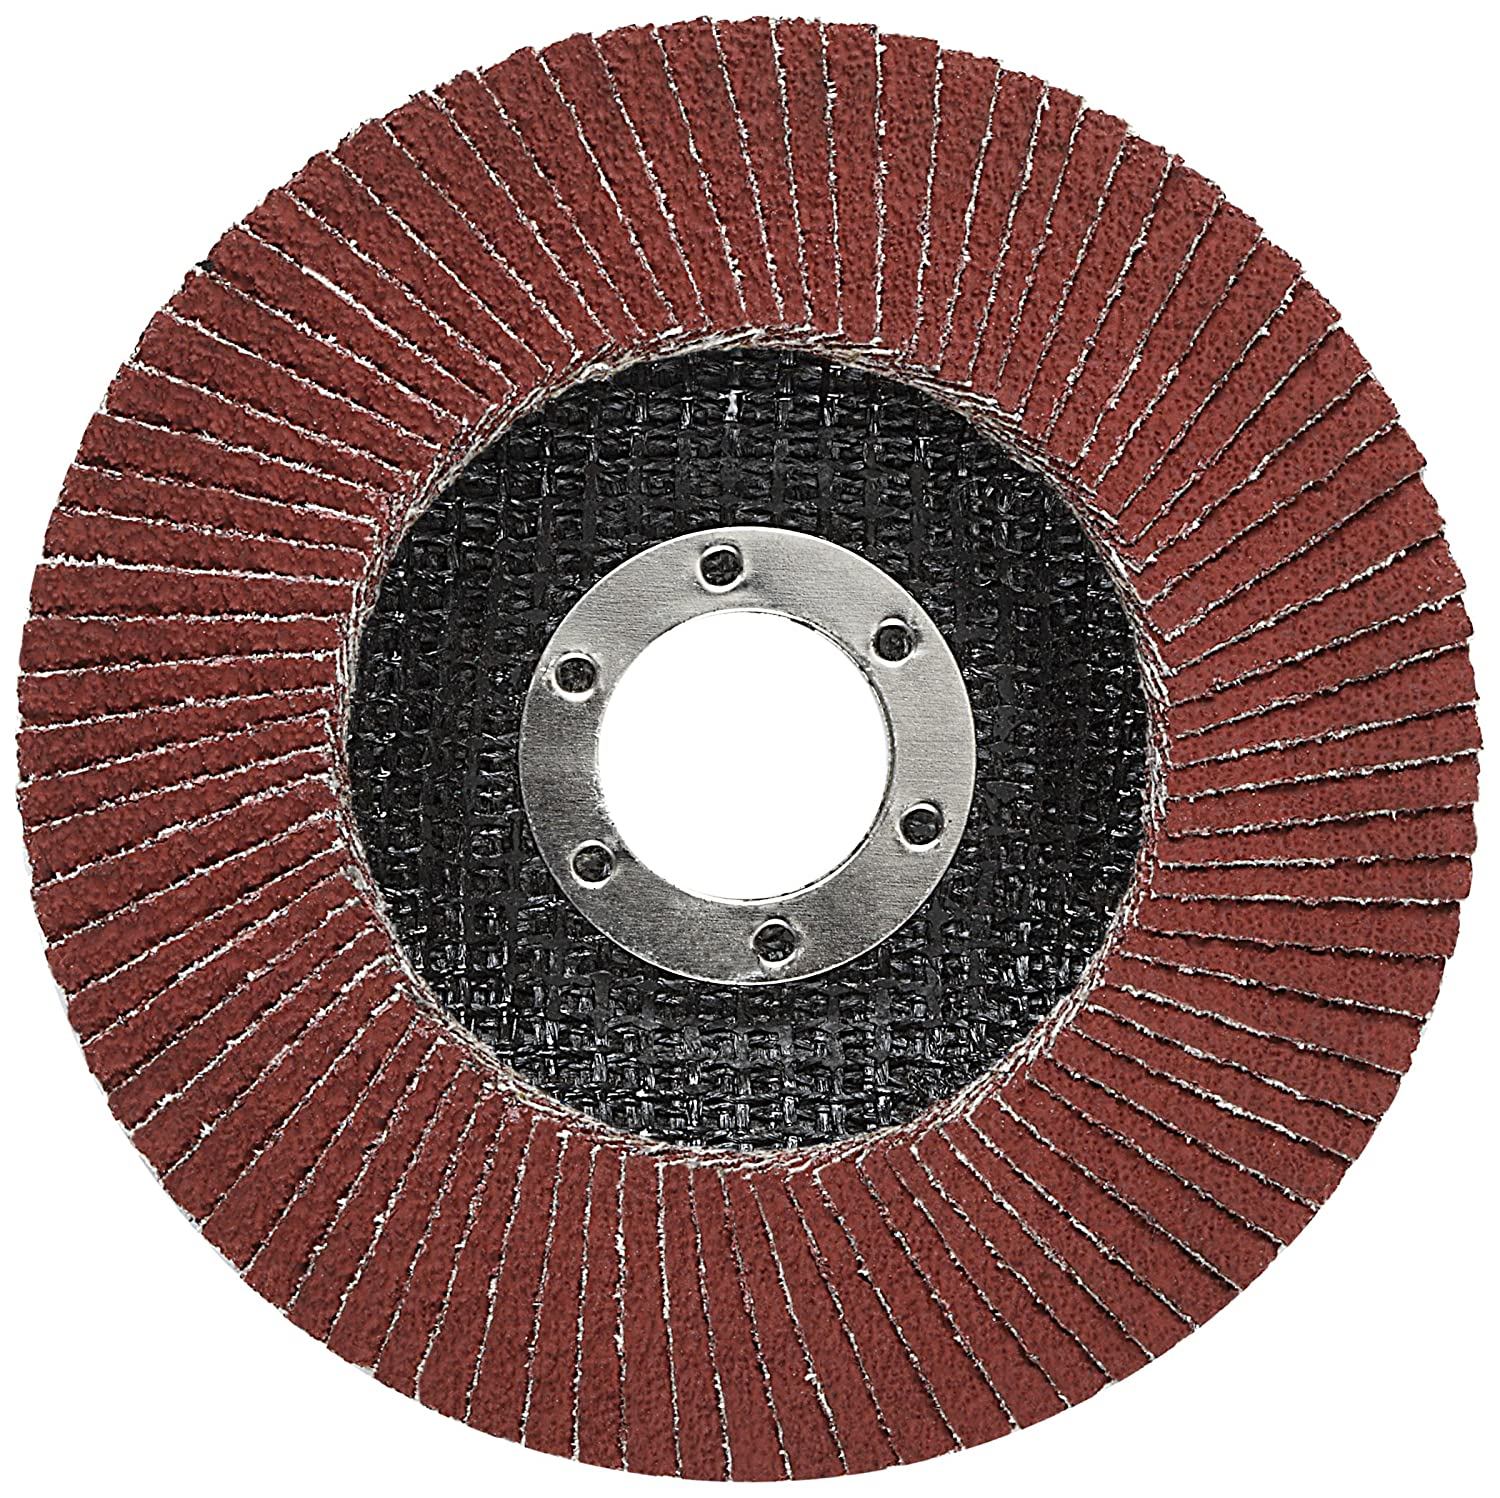 Cubitron II 64403 3M Flap Disc 969F T27 4-1//2 x 5//8-11 40+ YF-Weight Polyester Film Backing Precision Shaped Ceramic Grain Abrasive Grit 4.5 Diameter Giant